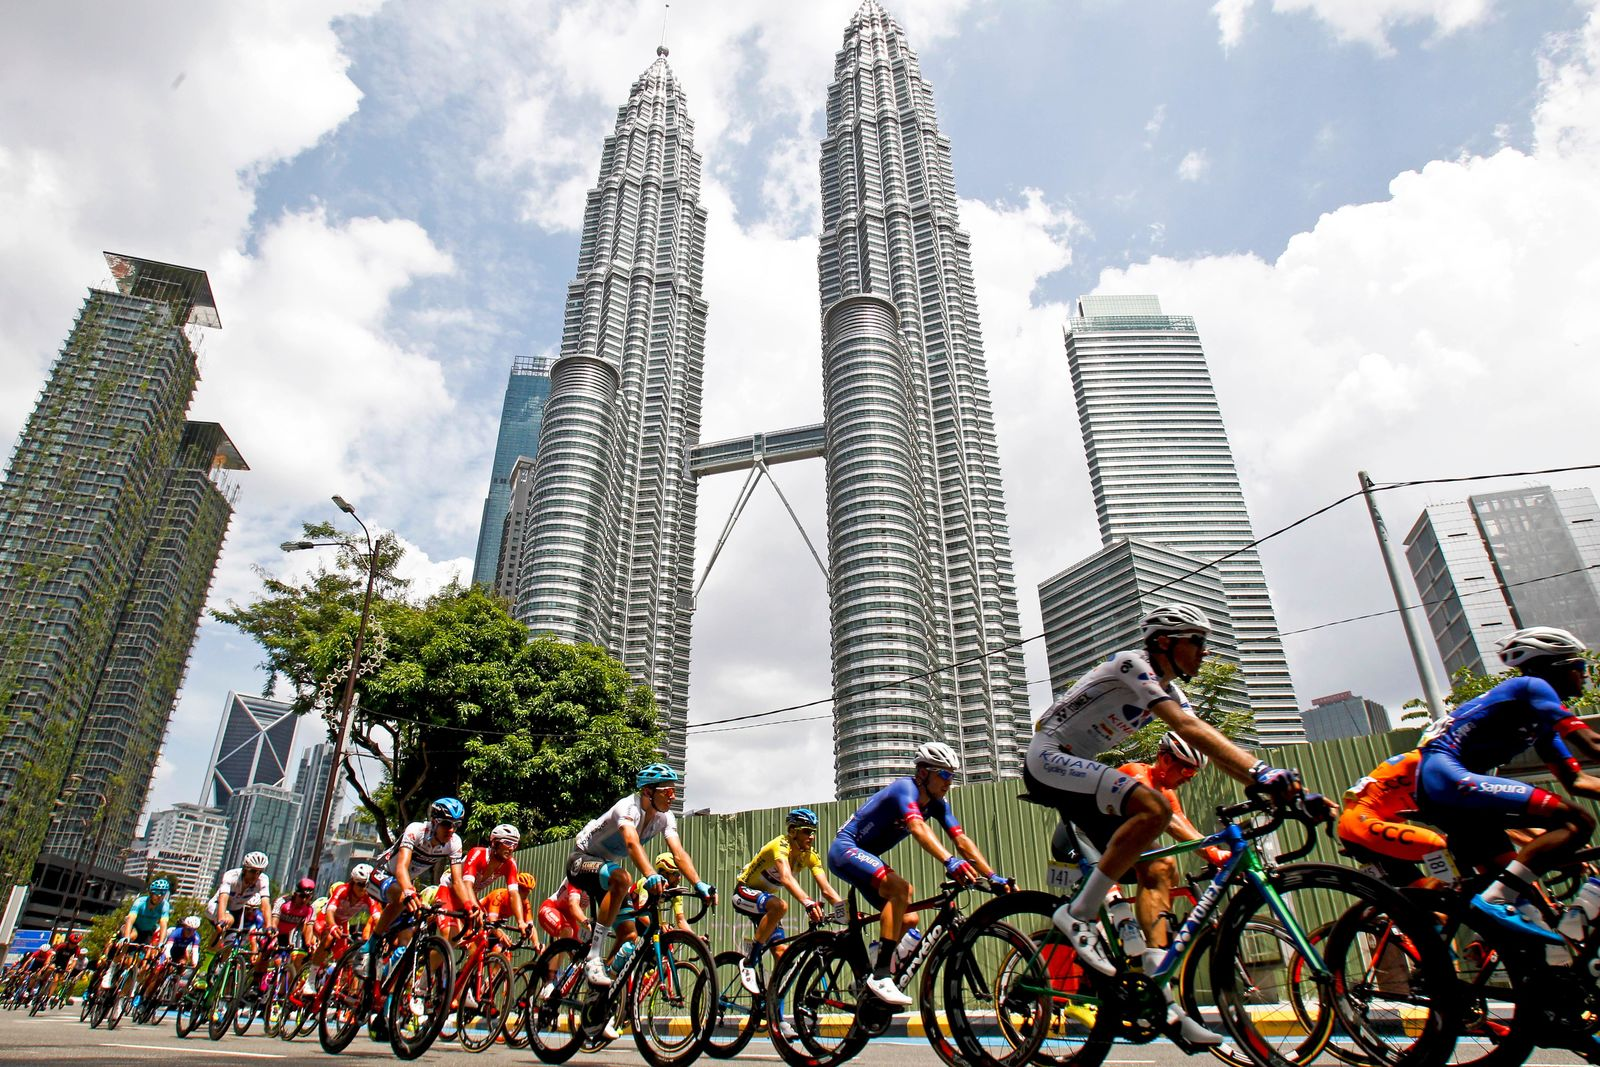 FILE - In this March 25, 2018 file photo, cyclists move past Malaysia's landmark Petronas Twin Towers during the last stage of Le Tour de Langkawi cycling race in Kuala Lumpur, Malaysia. (AP Photo/Sadiq Asyraf, File)